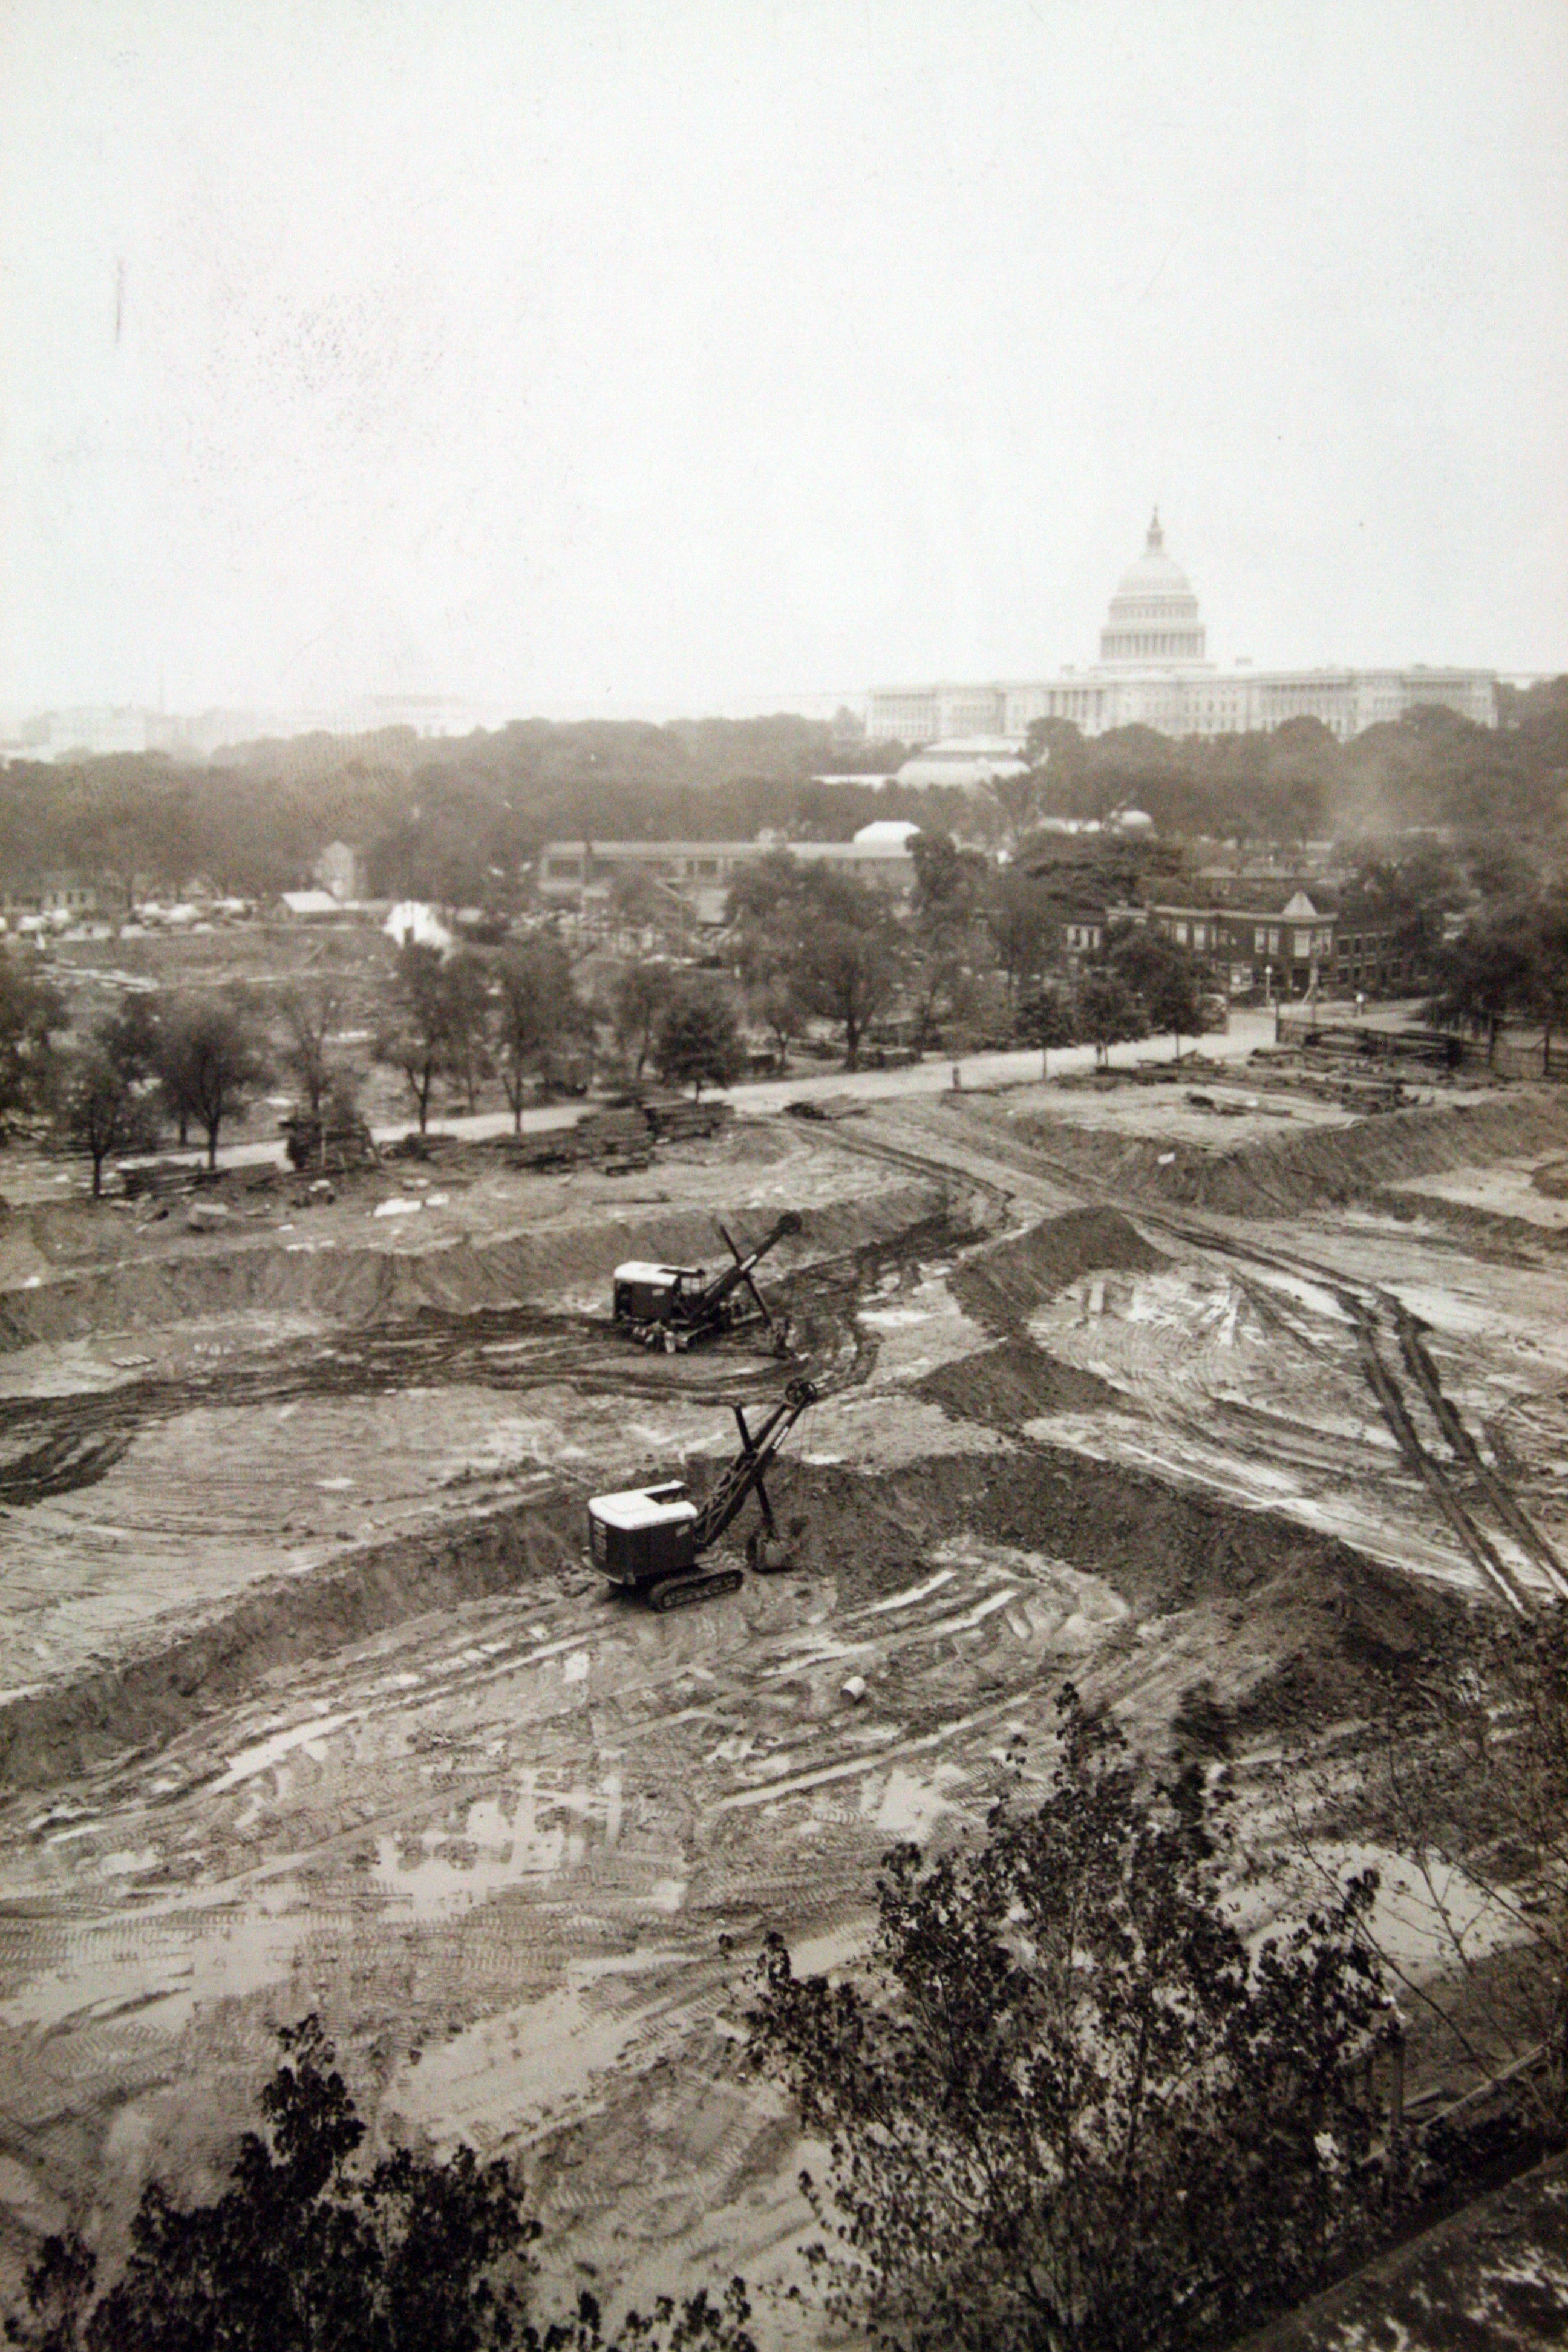 Clearing  the site for construction of the Switzer building, c. 1939.